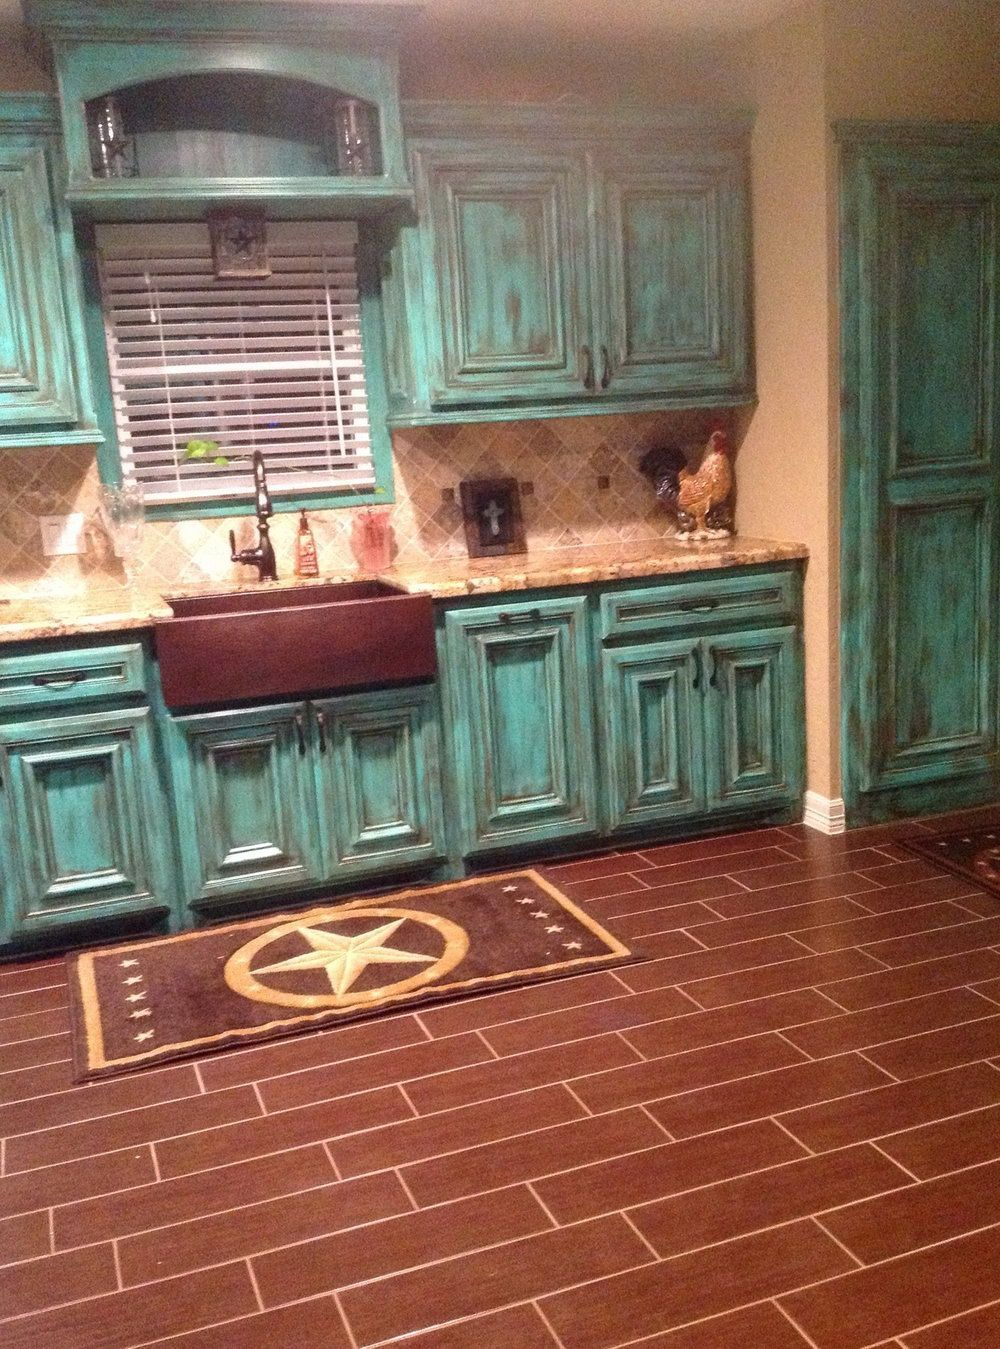 Looking For Some Wonderful Ideas To Create A Shabby Chic Theme In Your New Kitchen Shabby In 2020 Teal Kitchen Cabinets Teal Kitchen Rustic Kitchen Cabinets